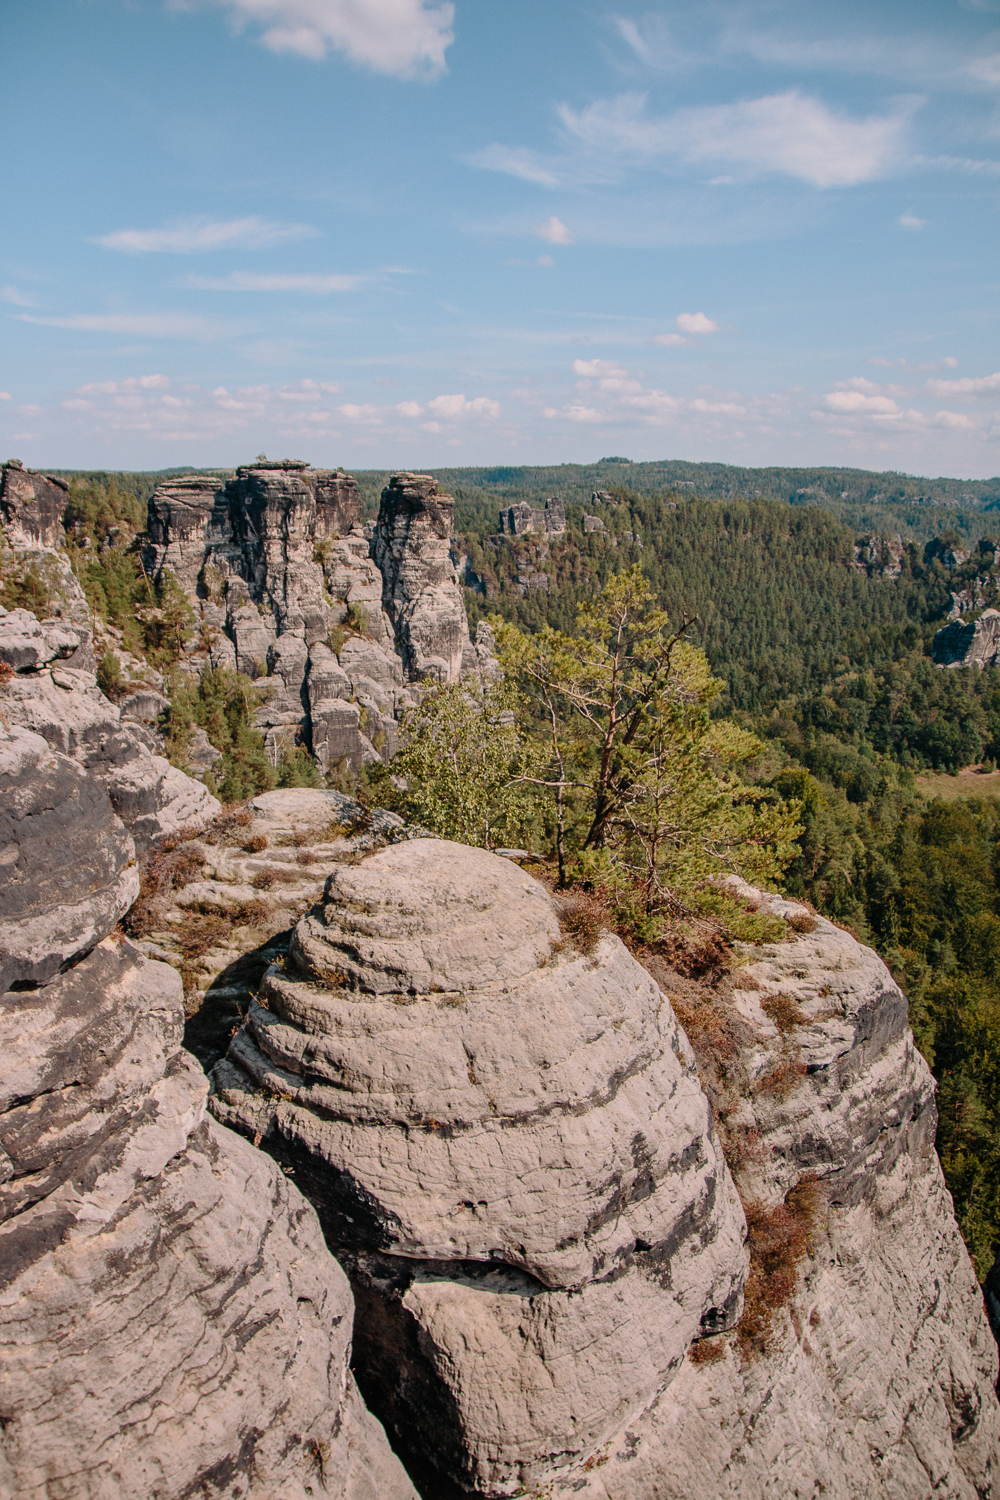 The Elbe Sandstone Mountains in Saxon Switzerland